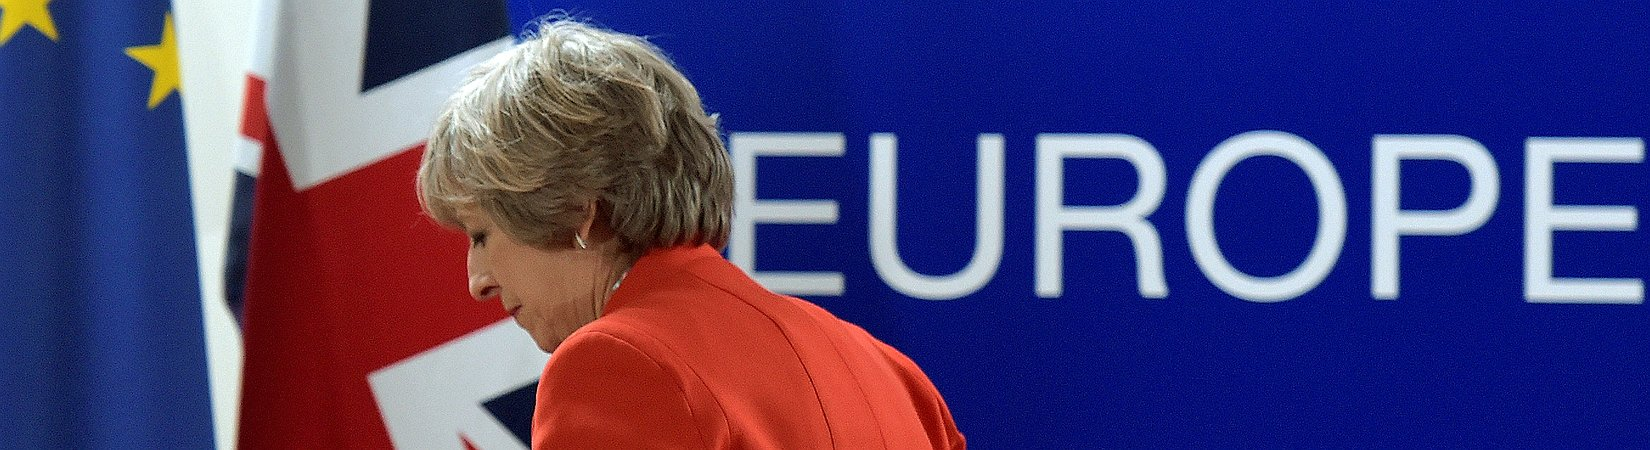 Theresa May presenta su plan para el Brexit